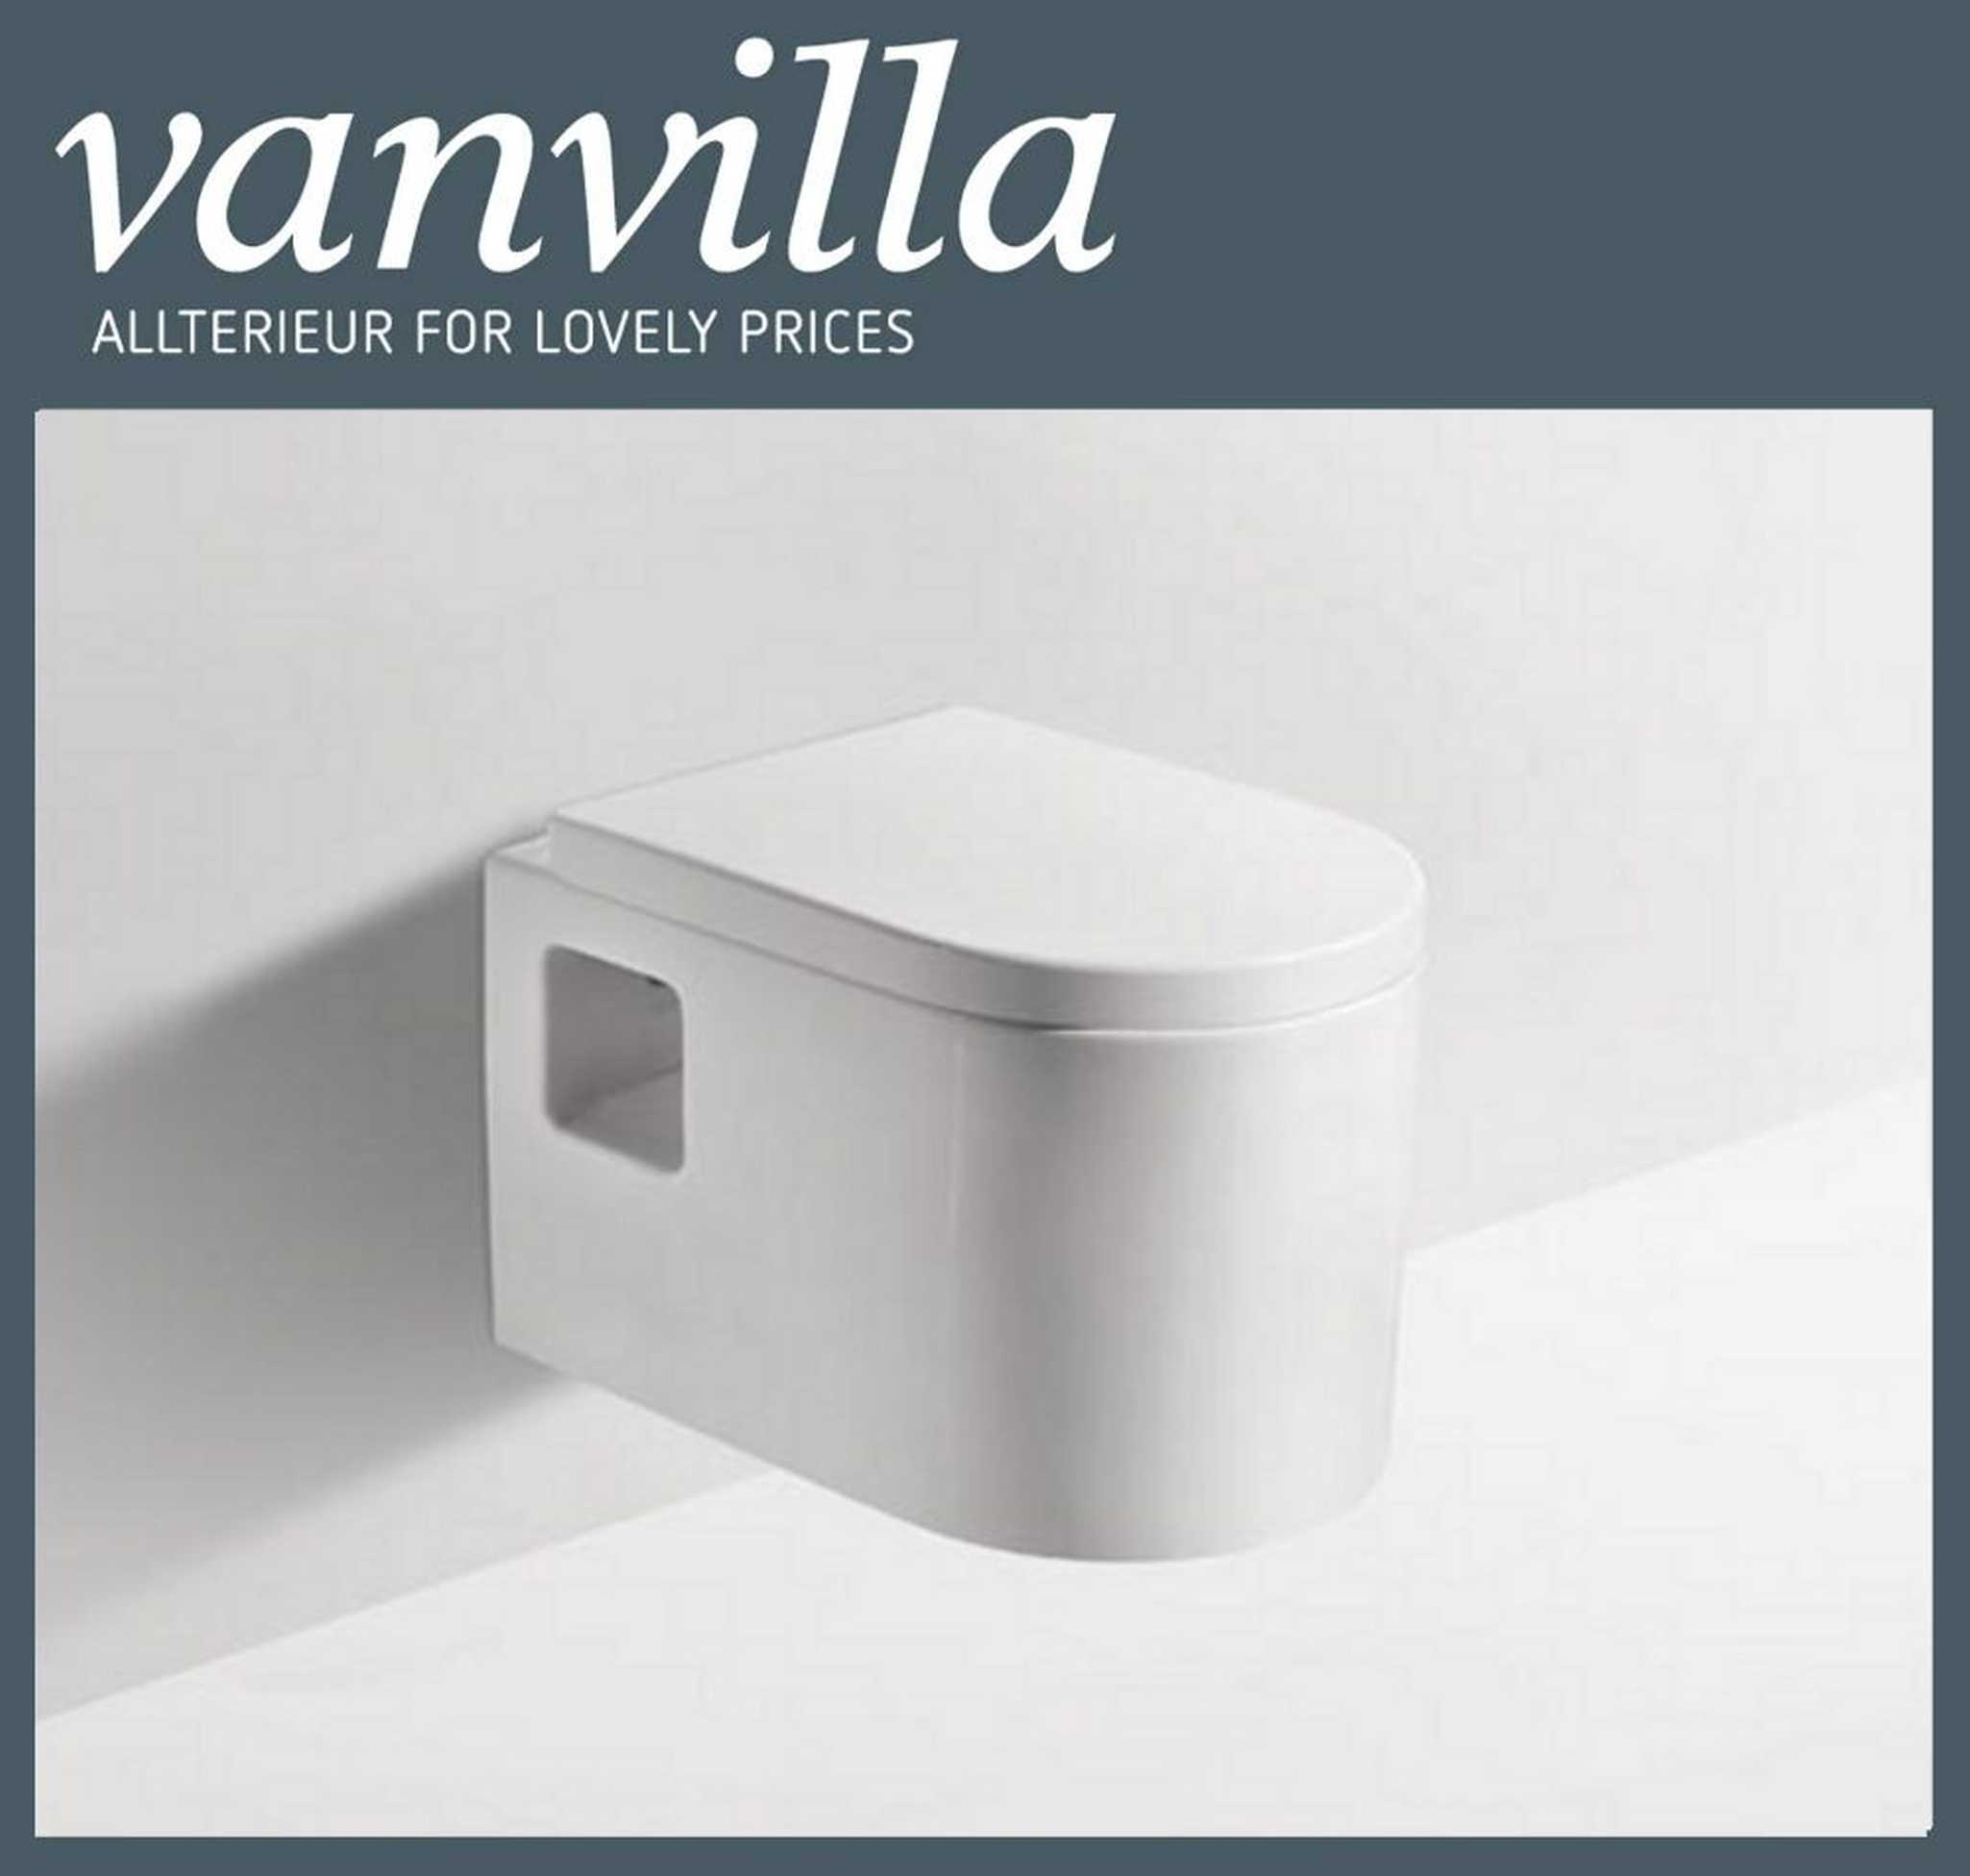 vanvilla Design Wand Hänge WC Toilette 837 inkl. Soft Close Absenkautomatik